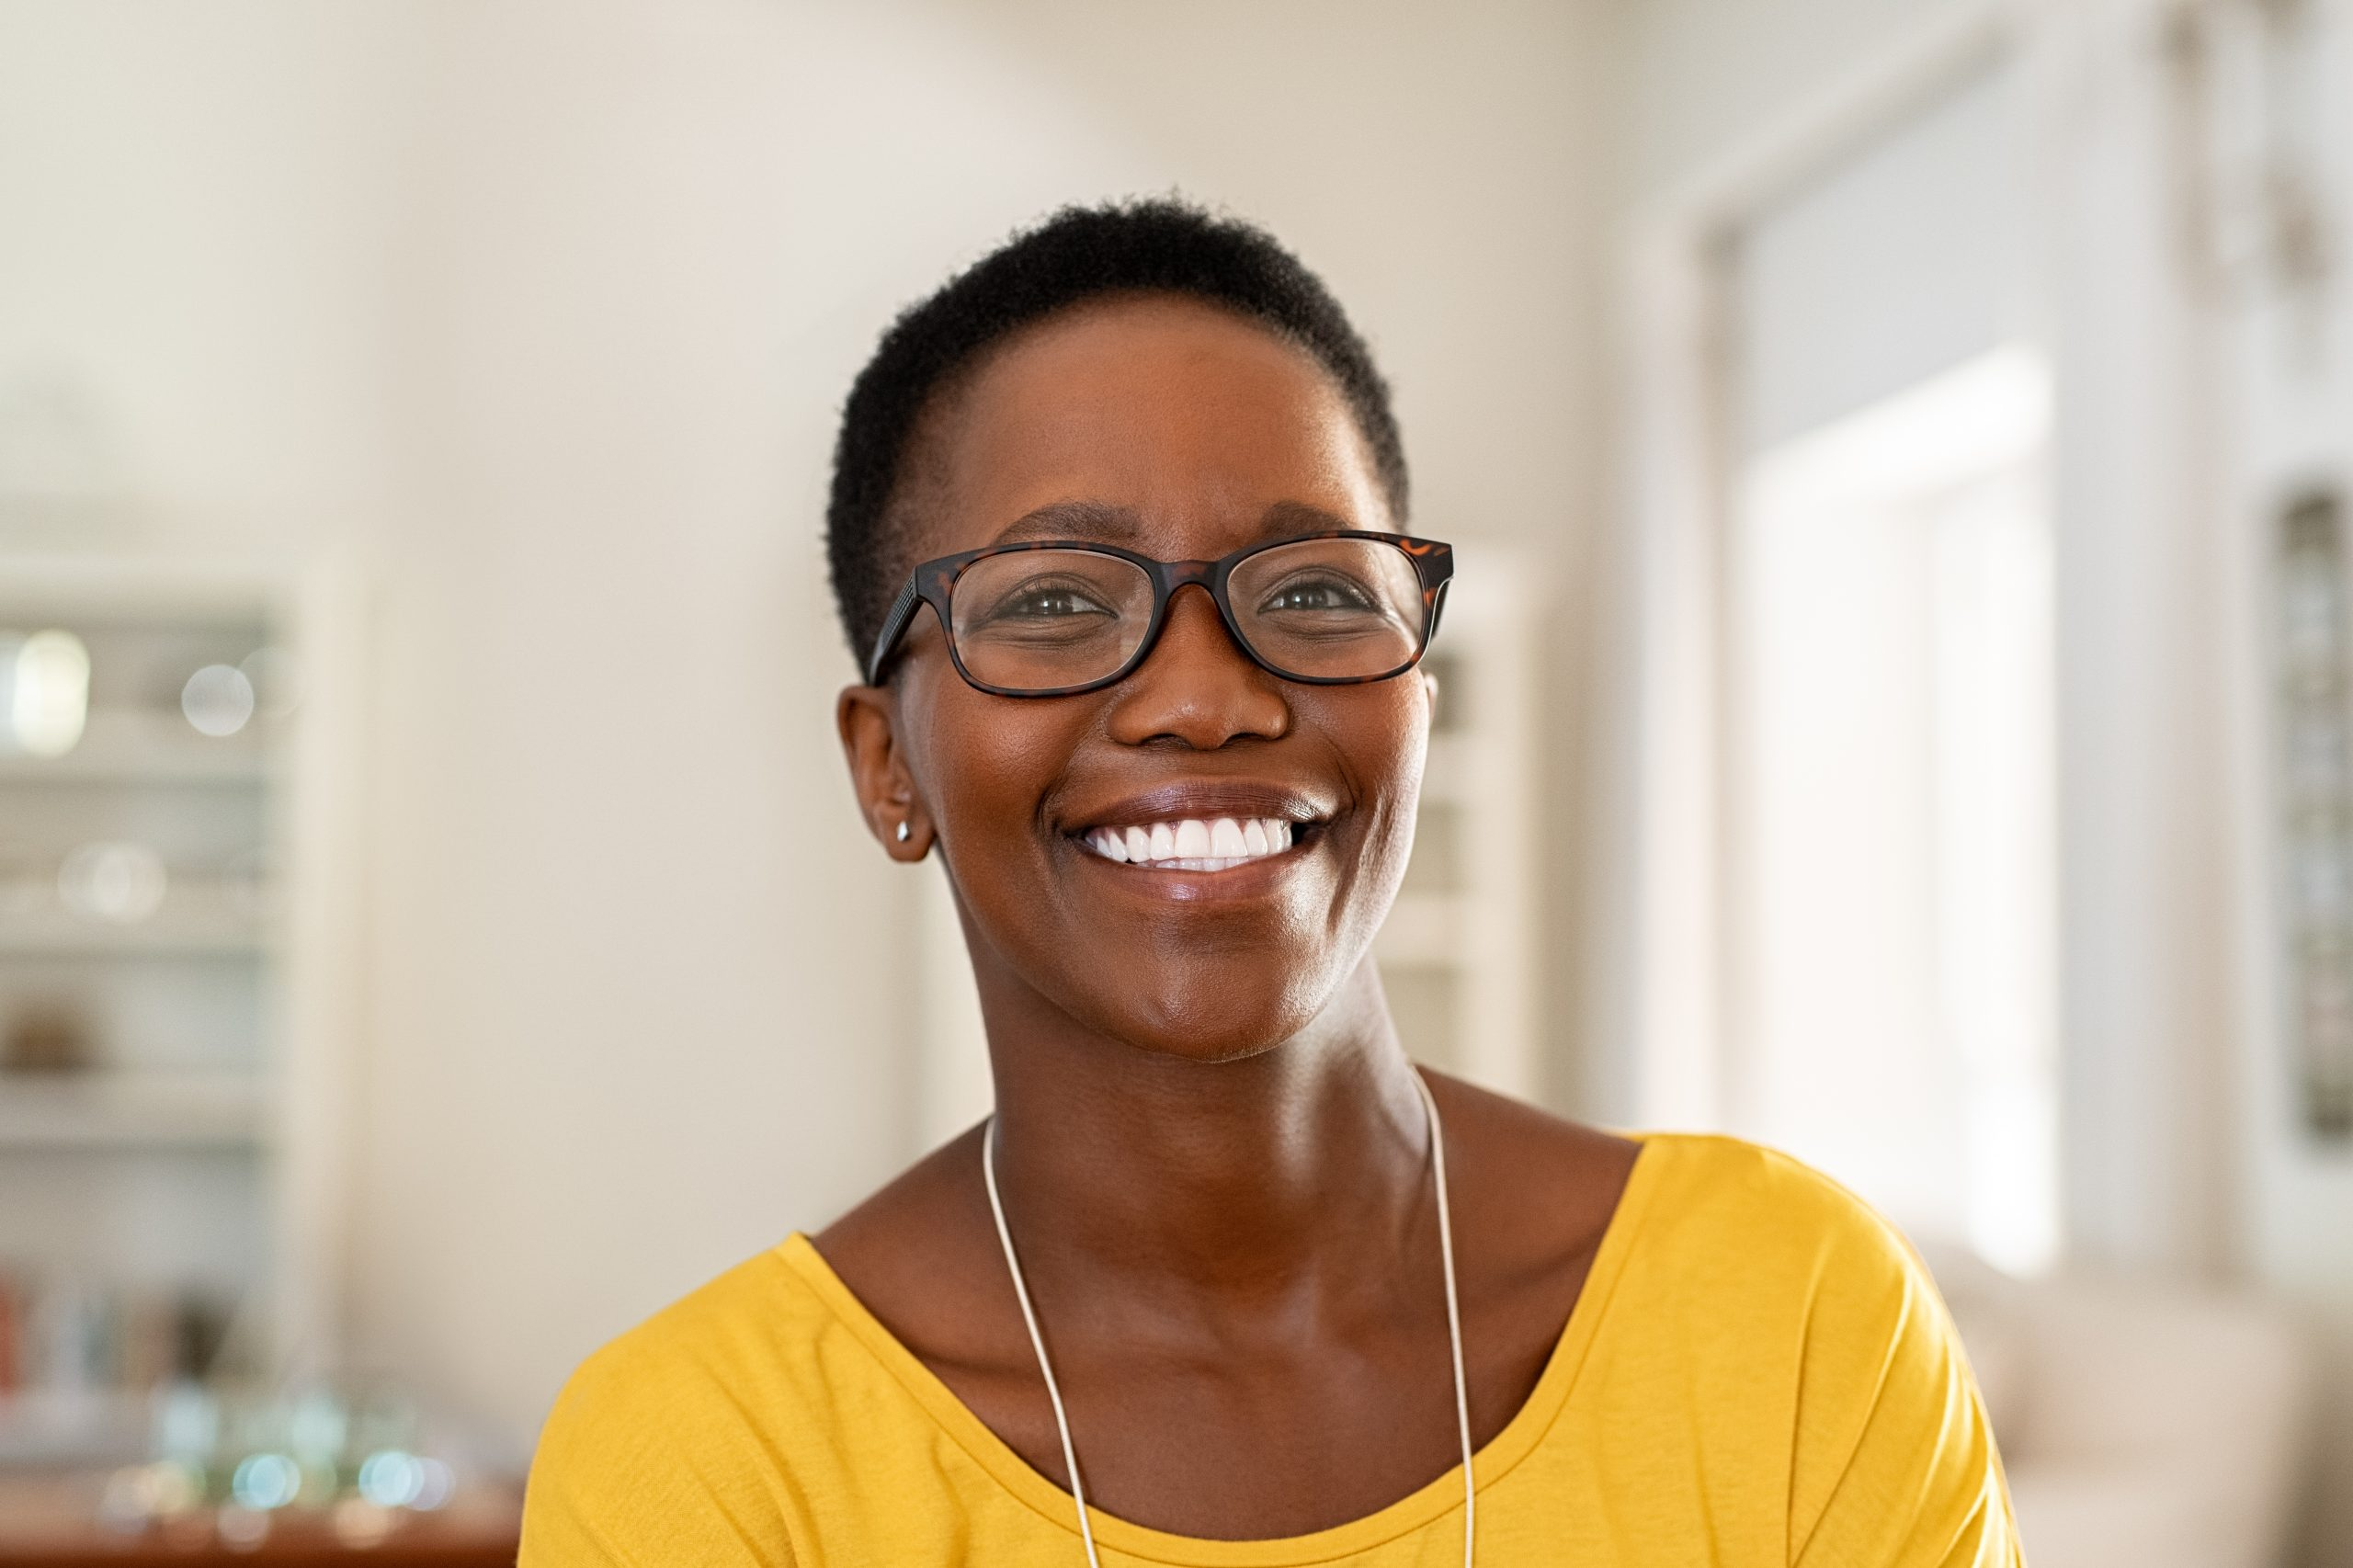 Cheerful african american lady with glasses and short hair.